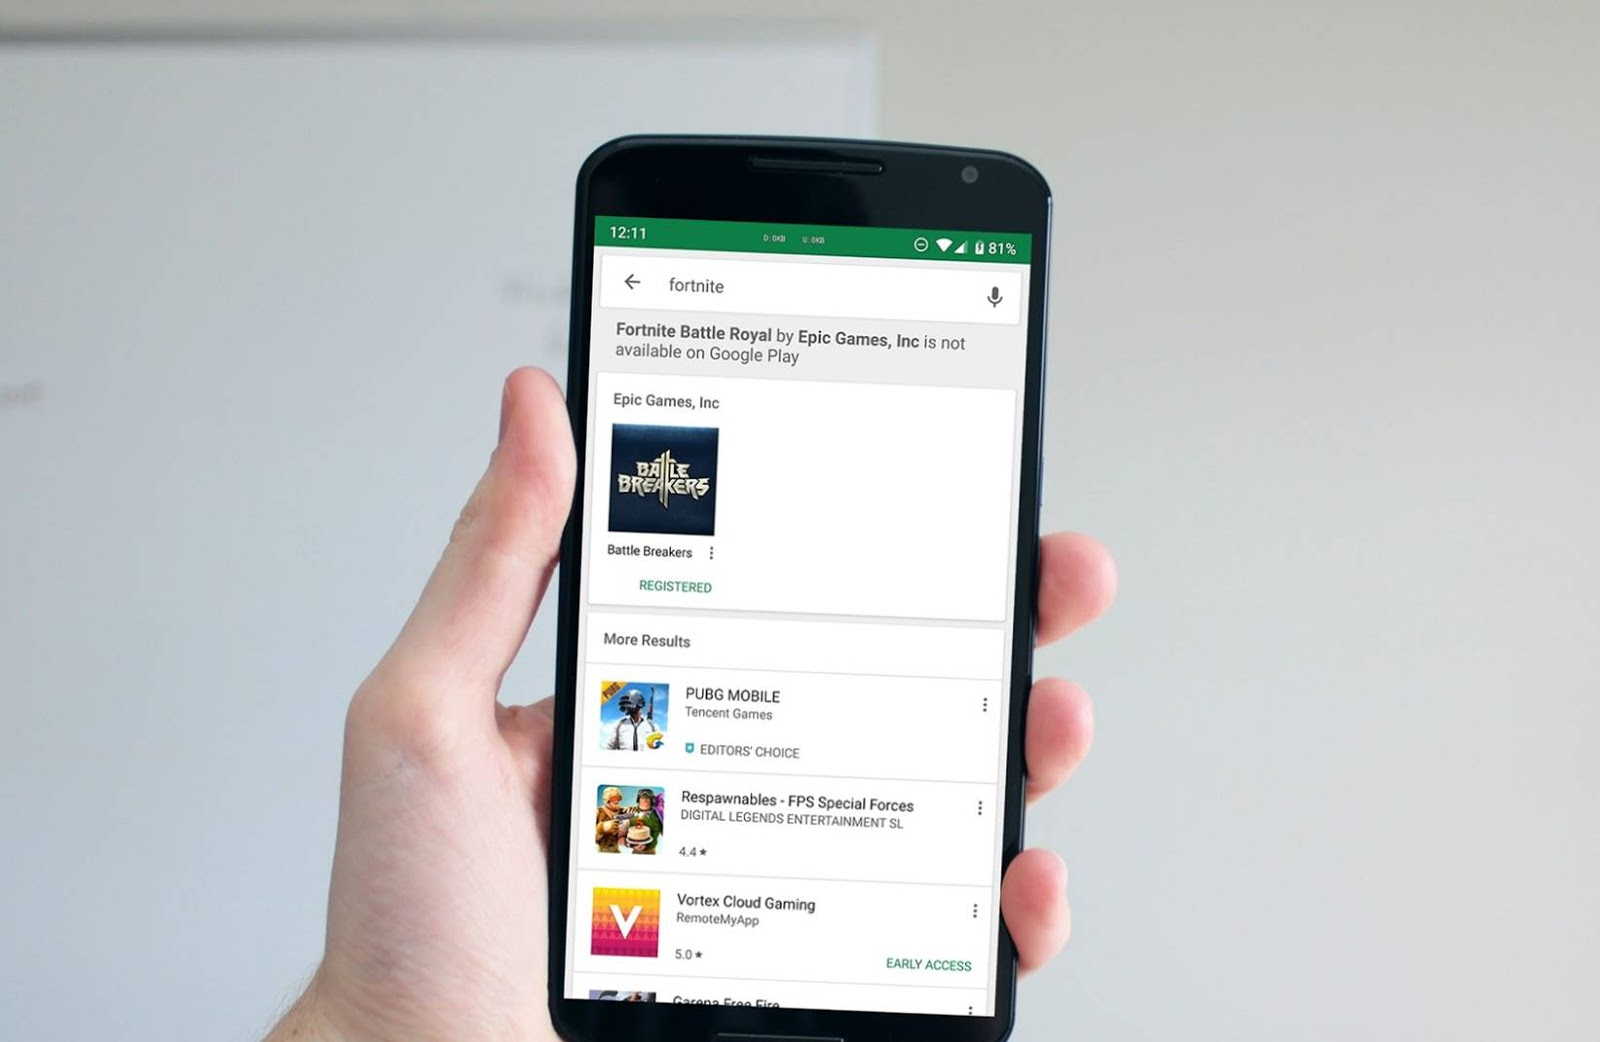 Google Play is finally taking action against fake games and apps, by alerting users